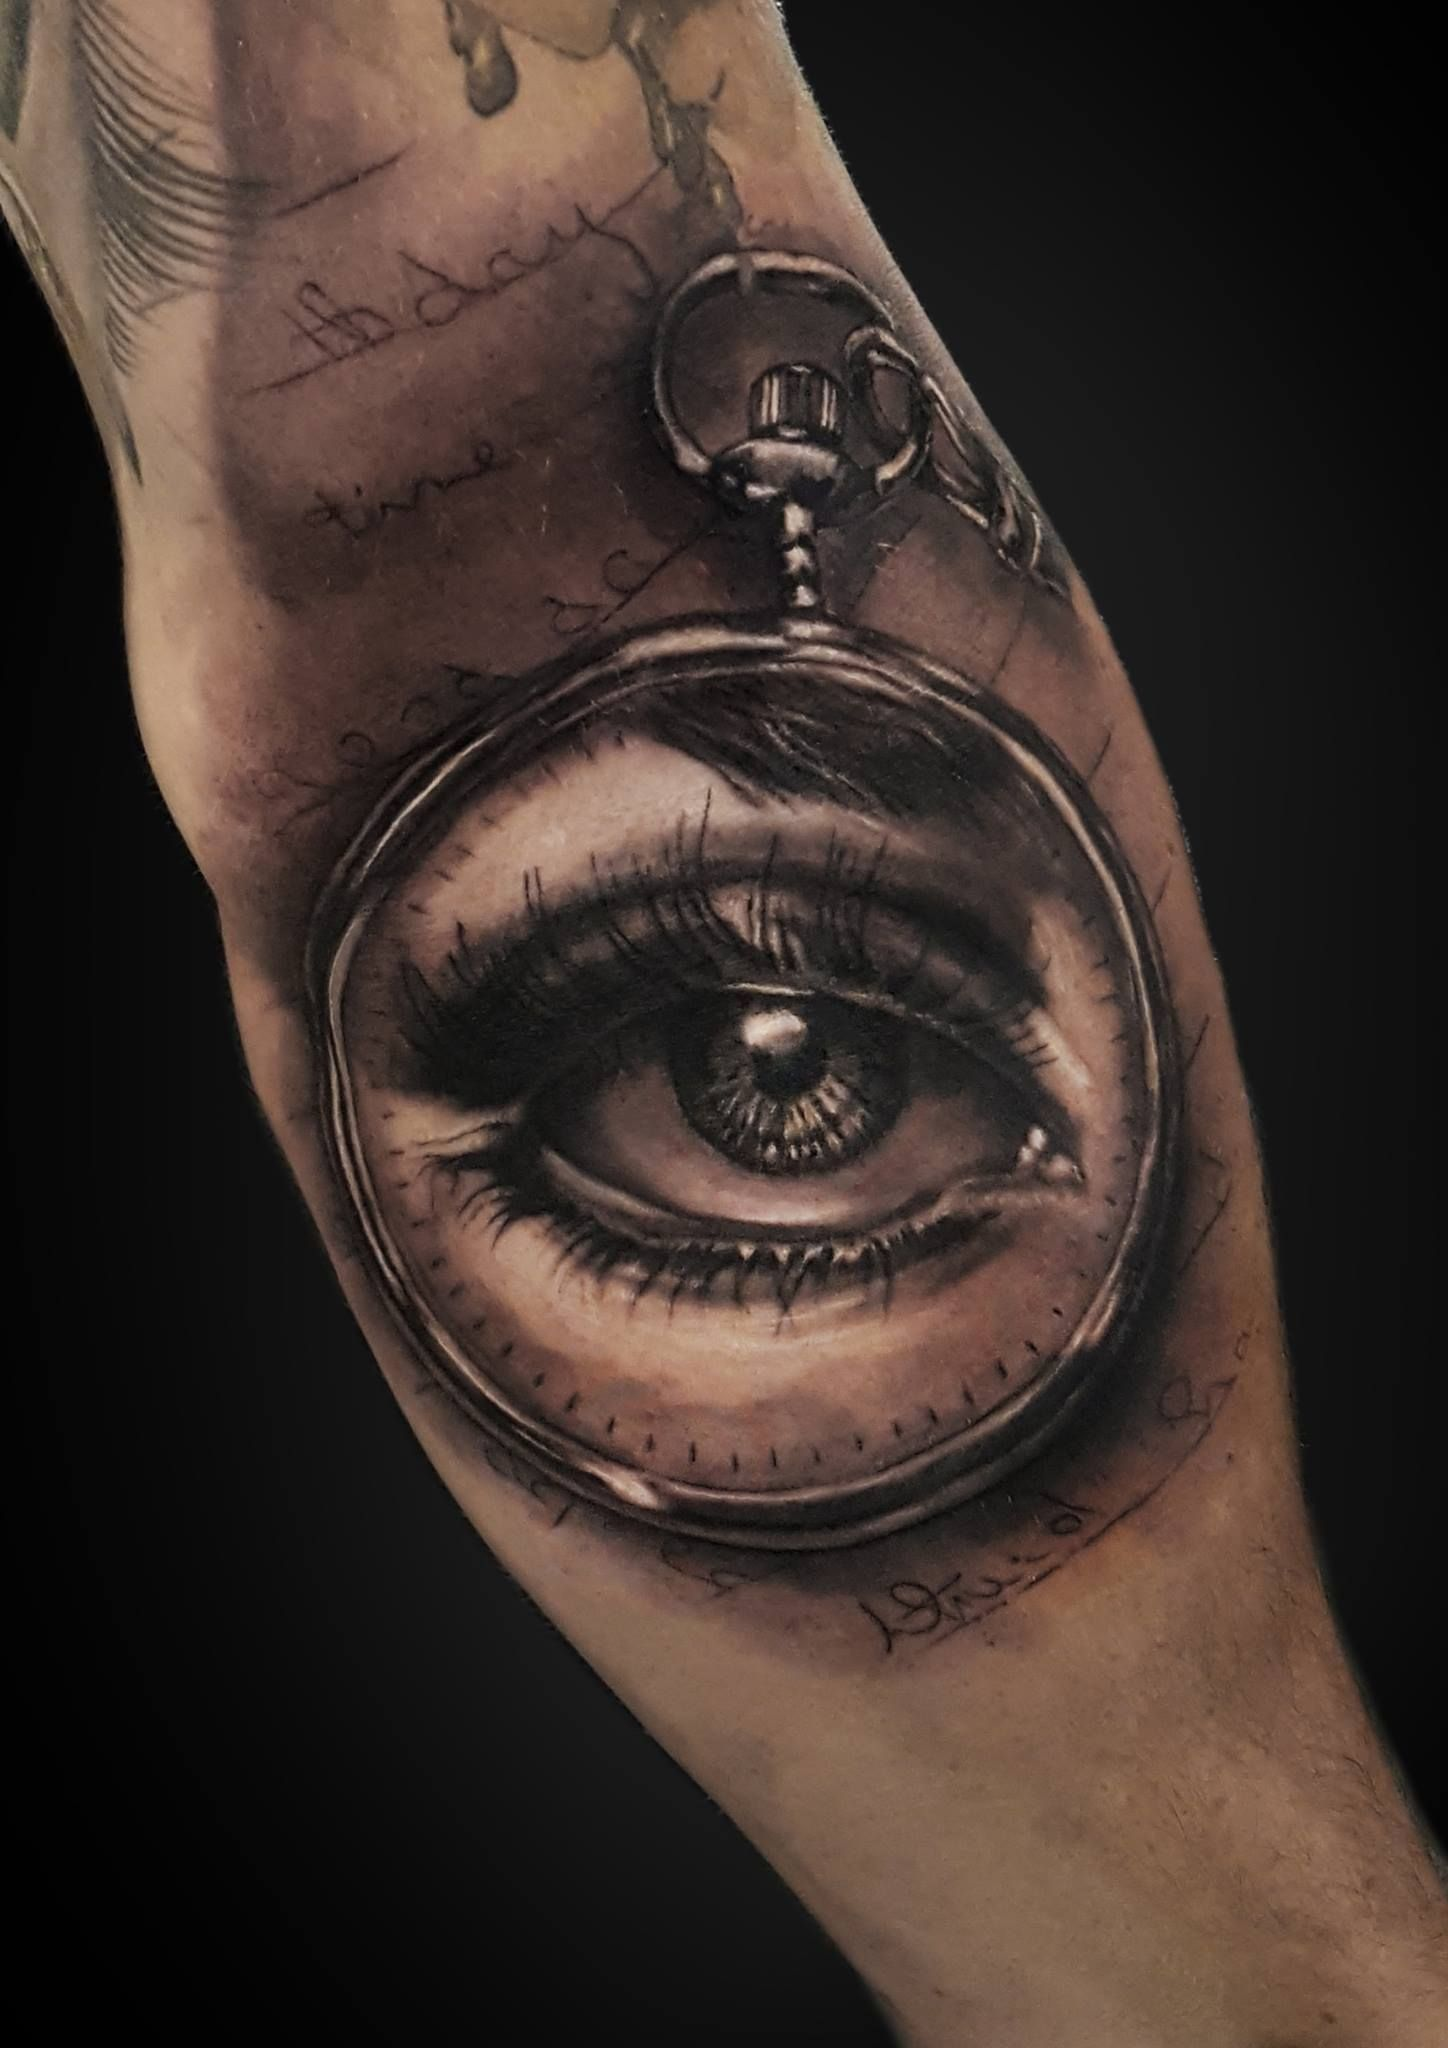 Stefan marcu specialises in black and grey realism tattoos for Best realism tattoo artist near me